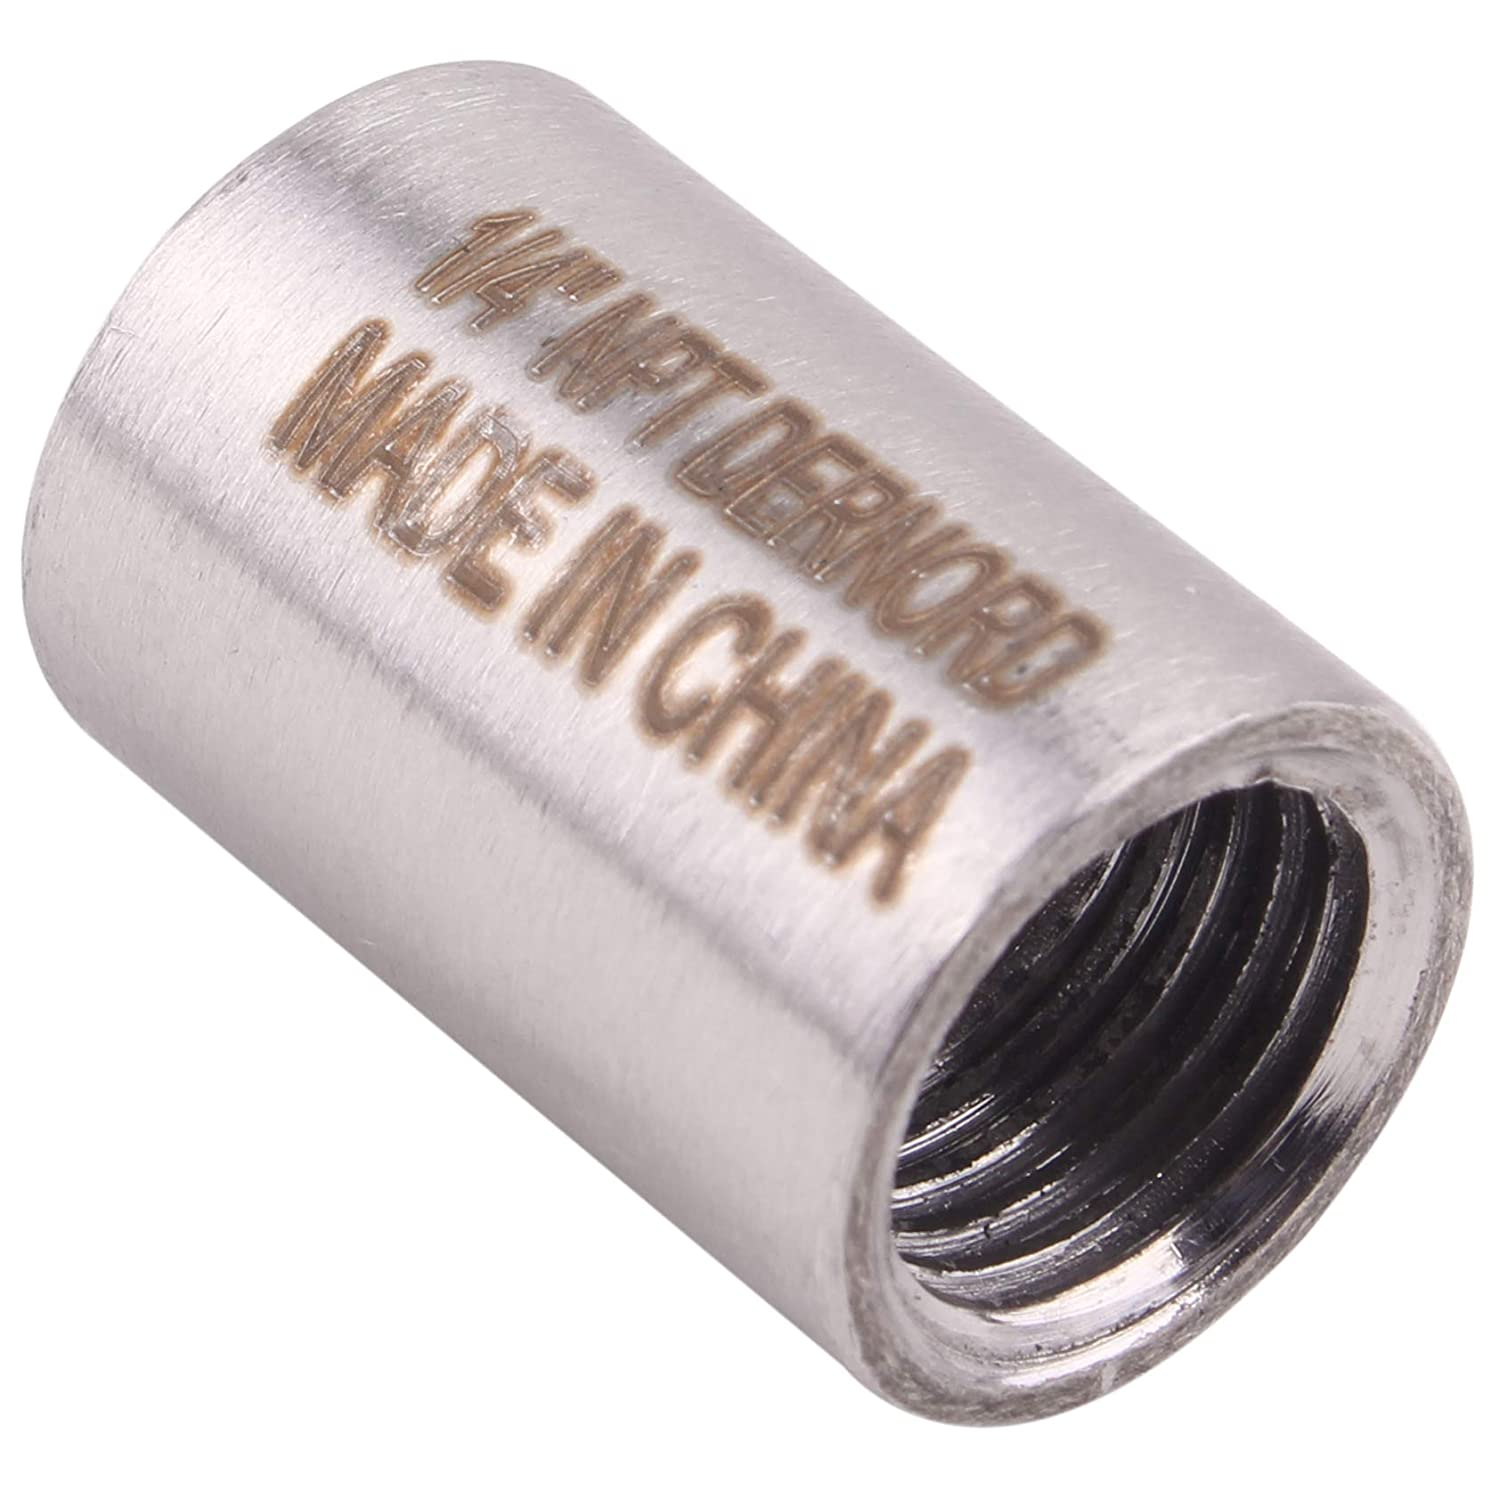 Stainless Steel 304 Cast Pipe Fitting Class 150 Coupling Pack of 2 1//4NPT Female